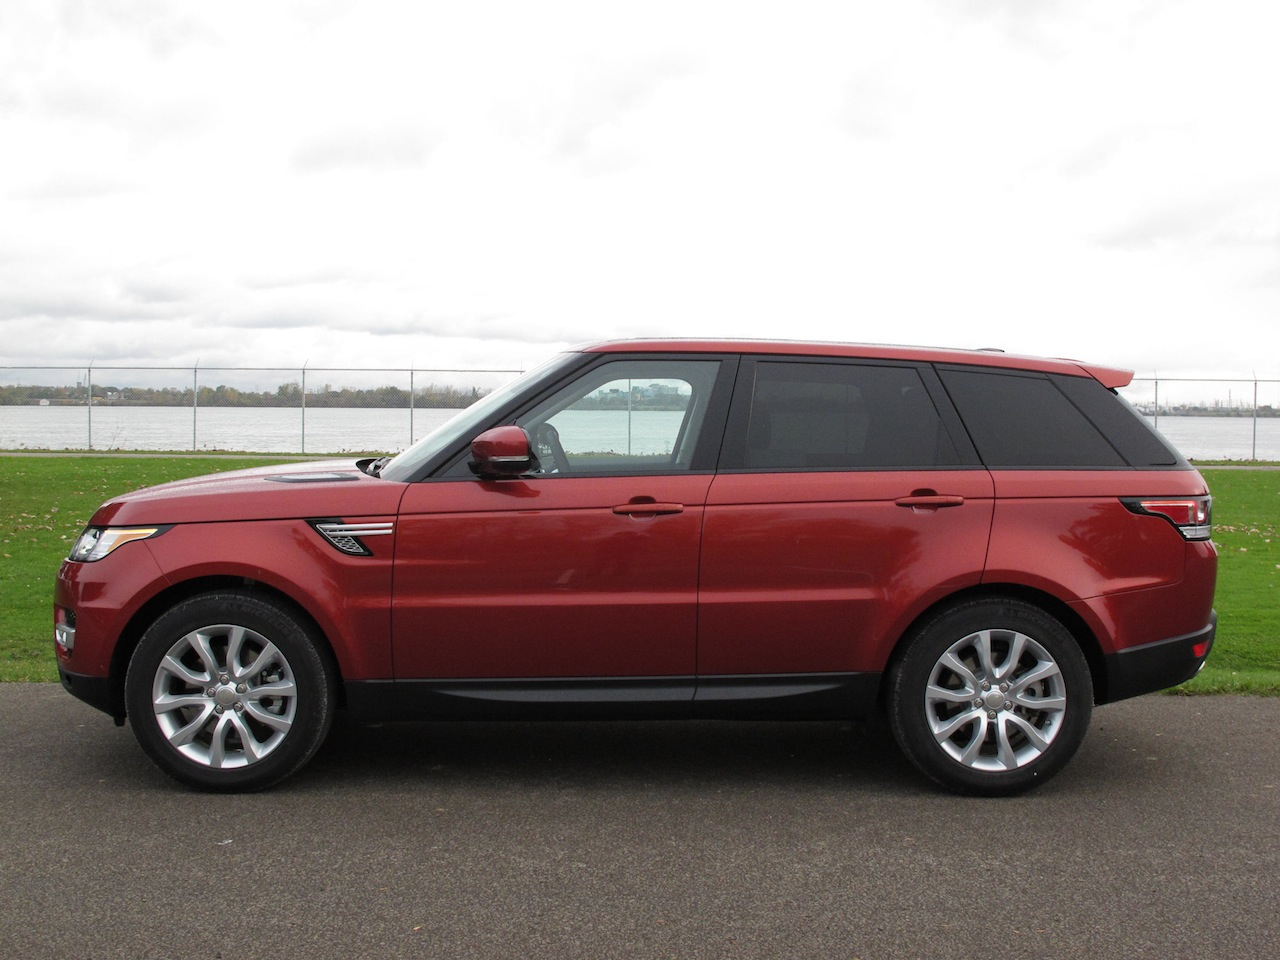 2014 Range Rover Sport V6 Hse And 2014 Bmw X5 Xdrive50i